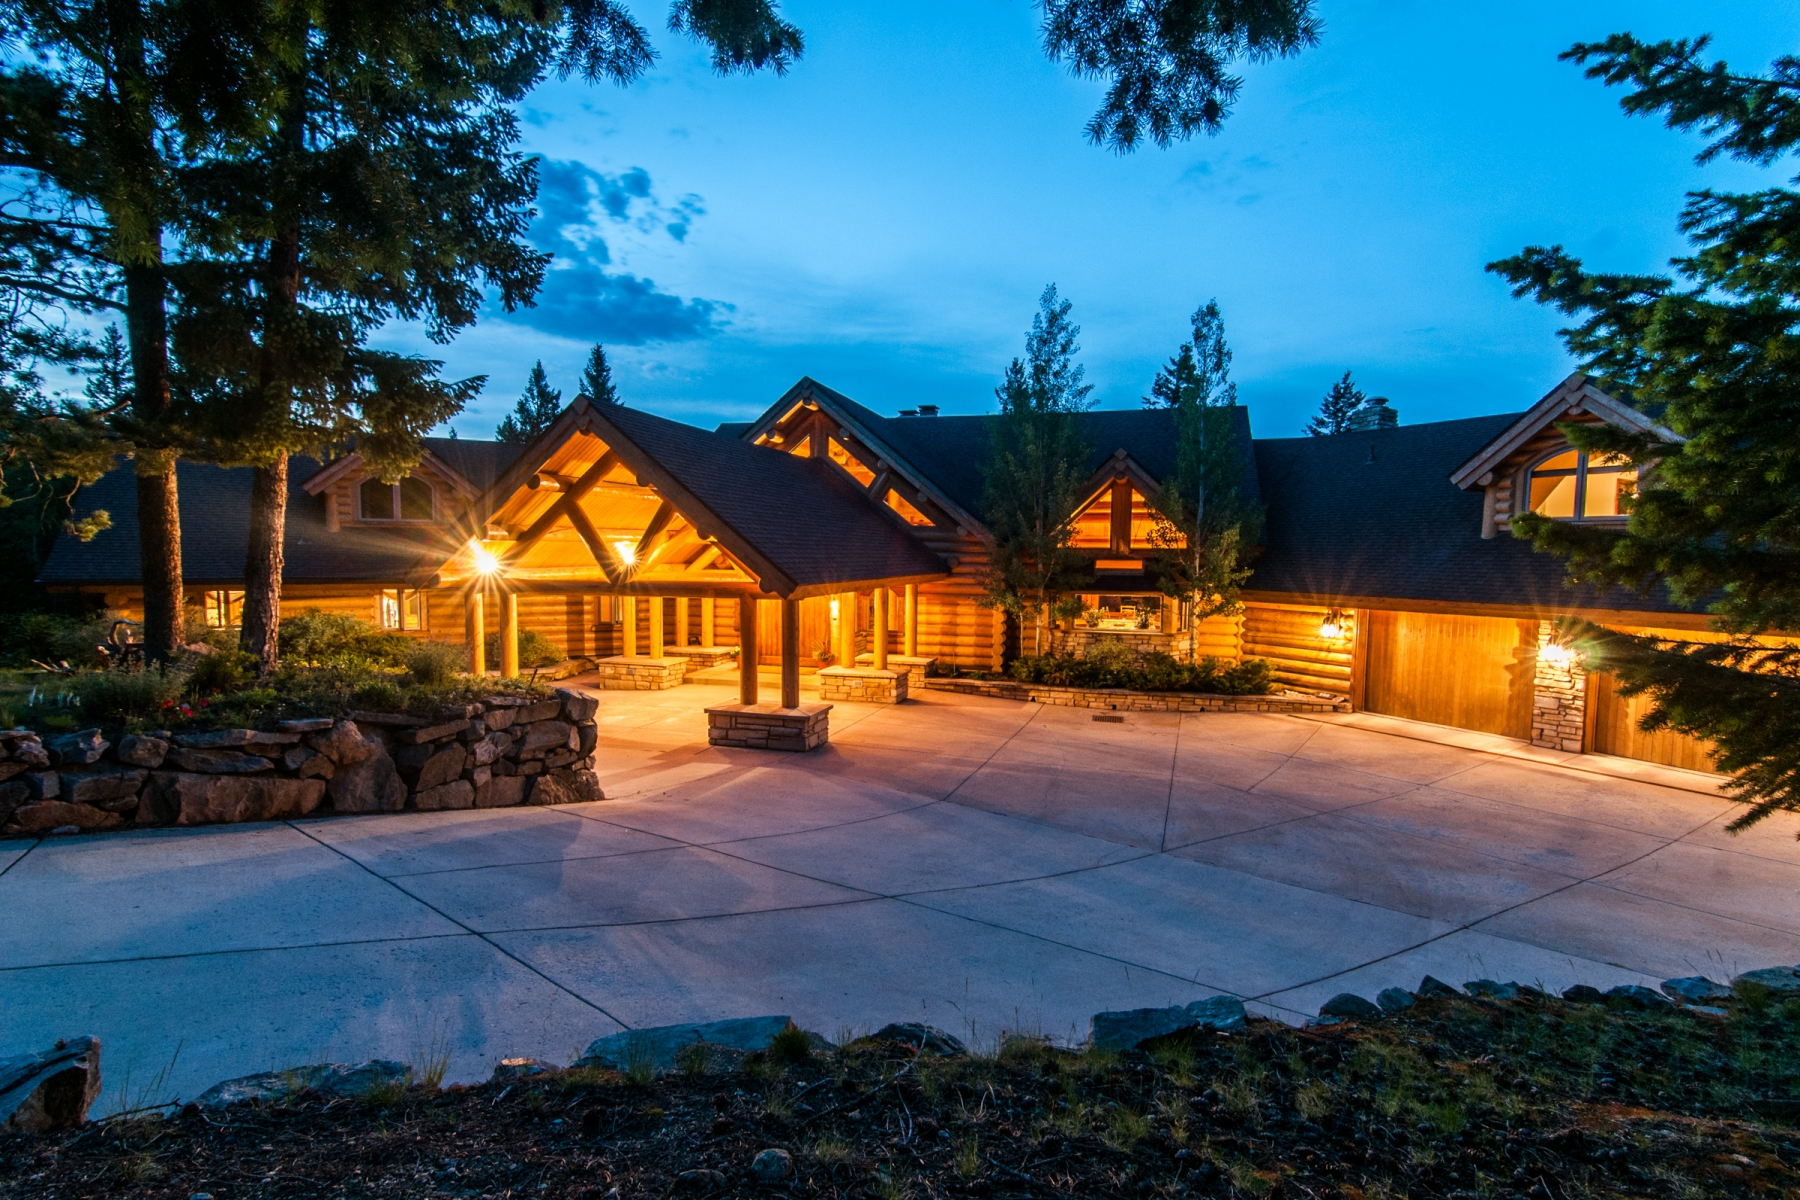 Single Family Home for Sale at Tranquil Mountain Estate 590 West Meadow Road Evergreen, Colorado, 80439 United States